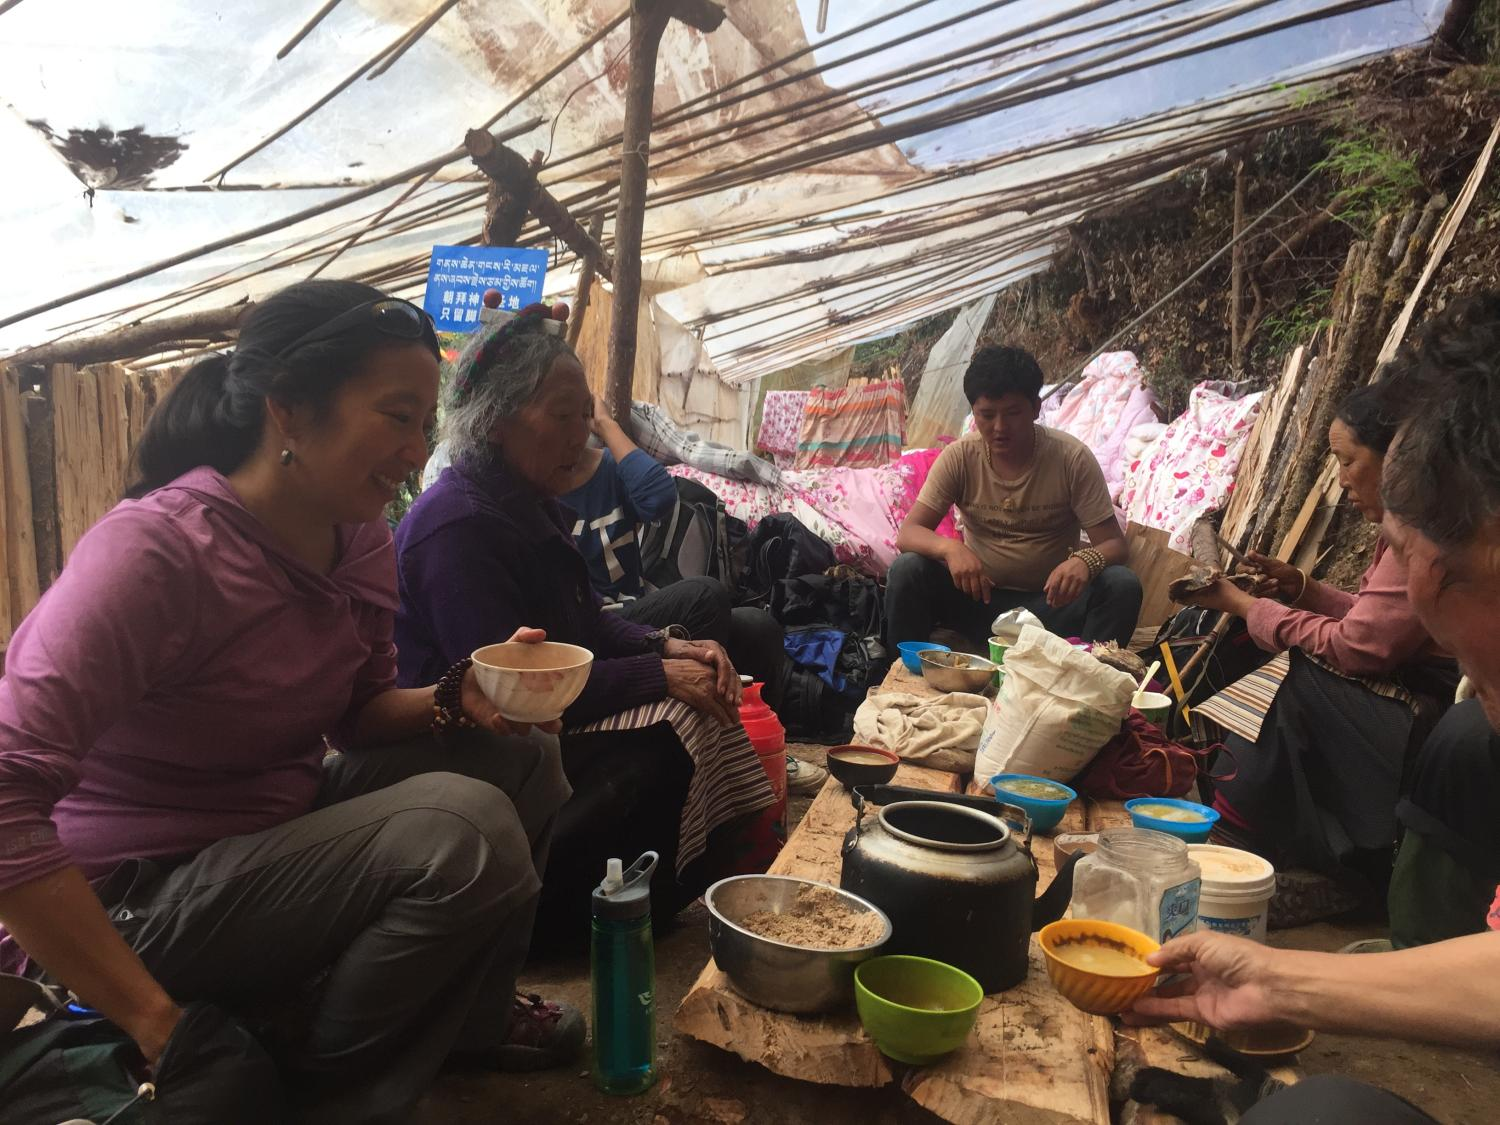 Having tea and tsampa with a family of pilgrims from Chamdo.